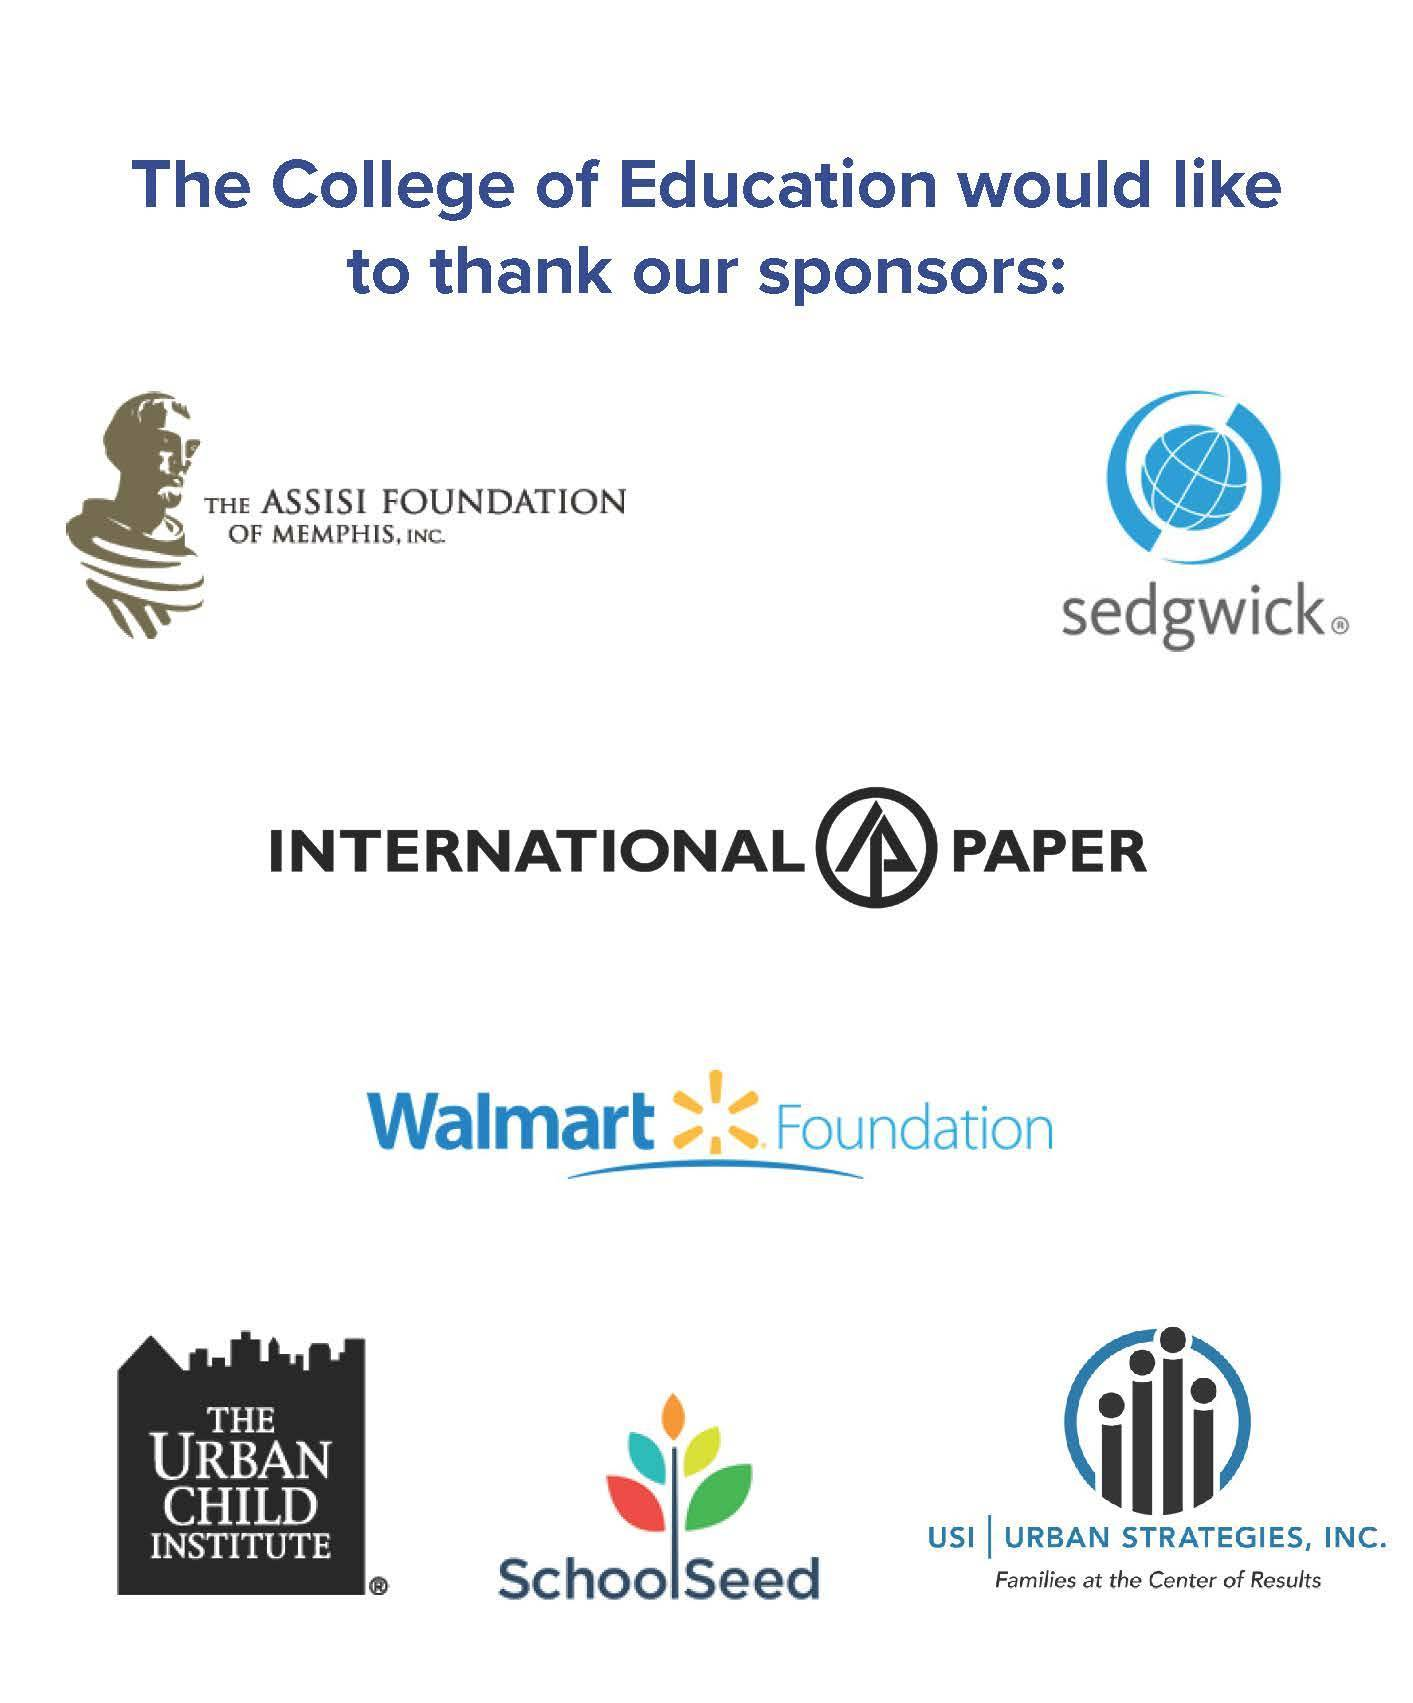 The College of Education would like to thank our sponsors: The Assisi Foundation of Memphis, Sedgwick, International Paper, Walmart Foundation, The Urban Child Institute, School Seed, Urban Strategies Inc., Mr. Hilliard Crews, Dr. Barbara Prescott, Ms. Tomeka Hart, and Mrs. Sue Ann Lipsey